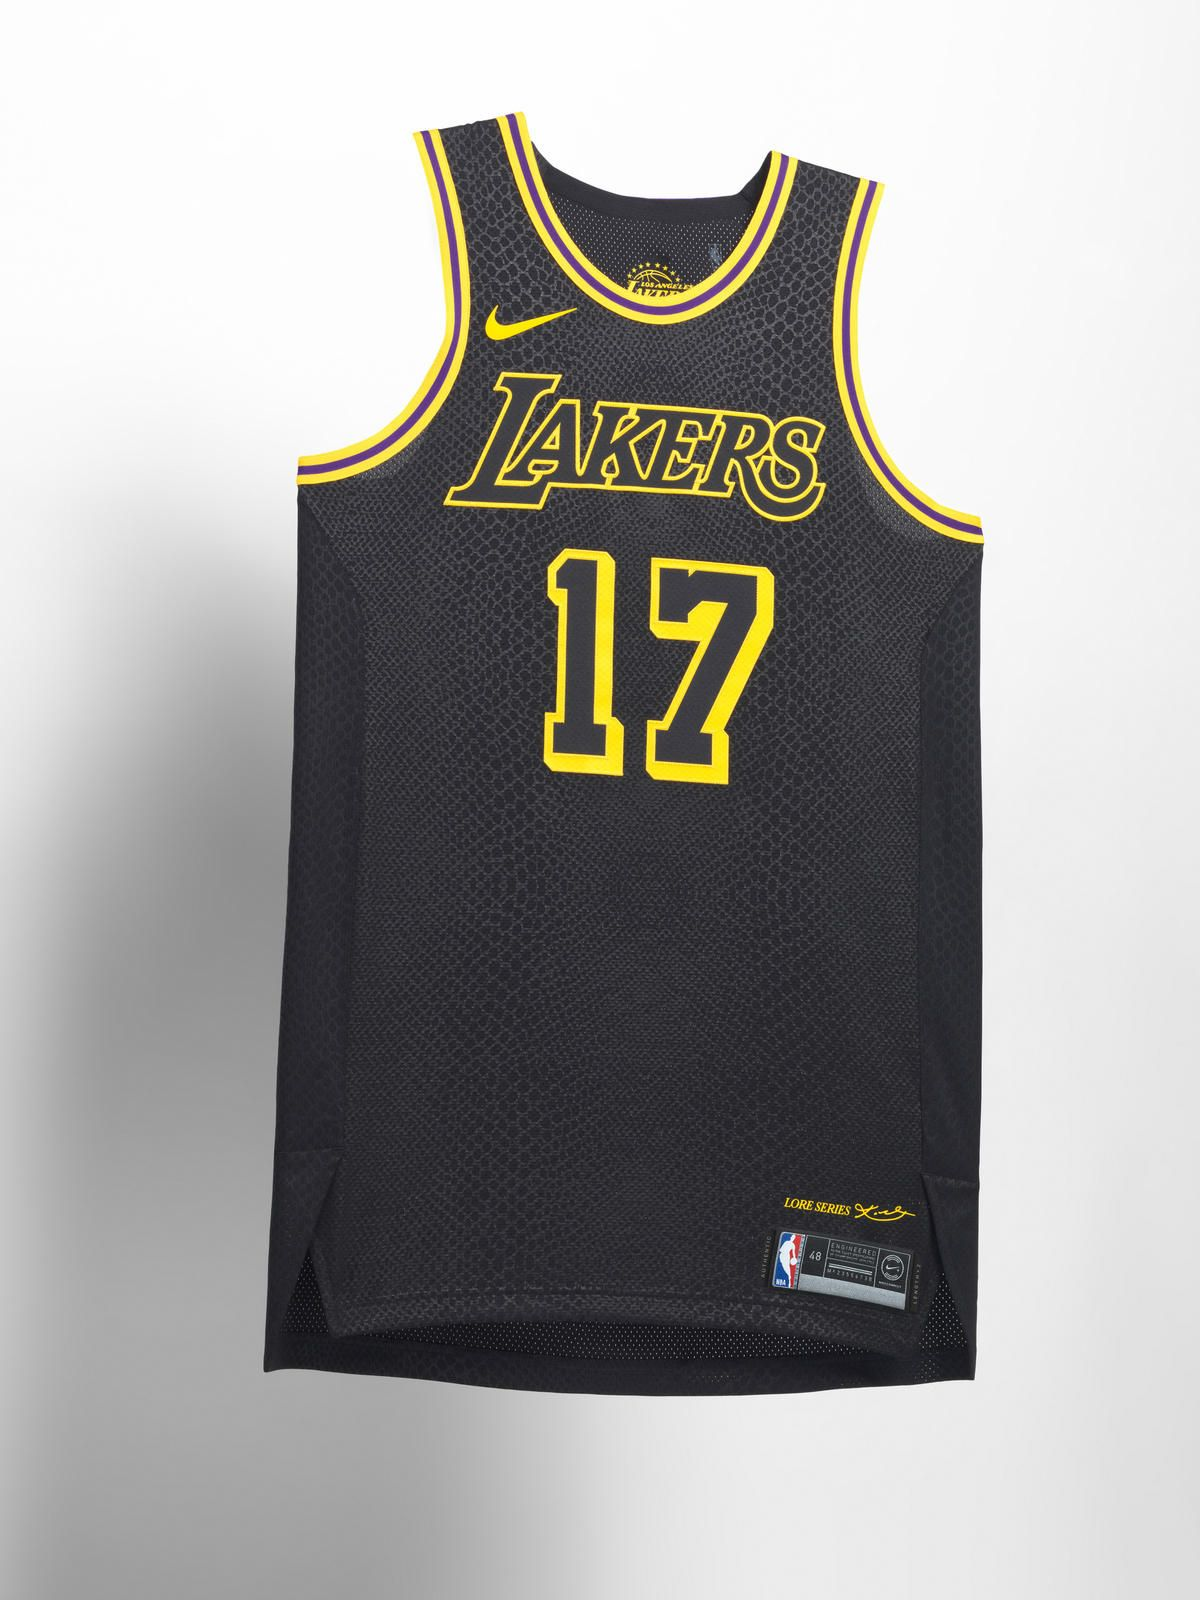 Nike NBA City Edition Uniform - Nike News a177d66f9b9